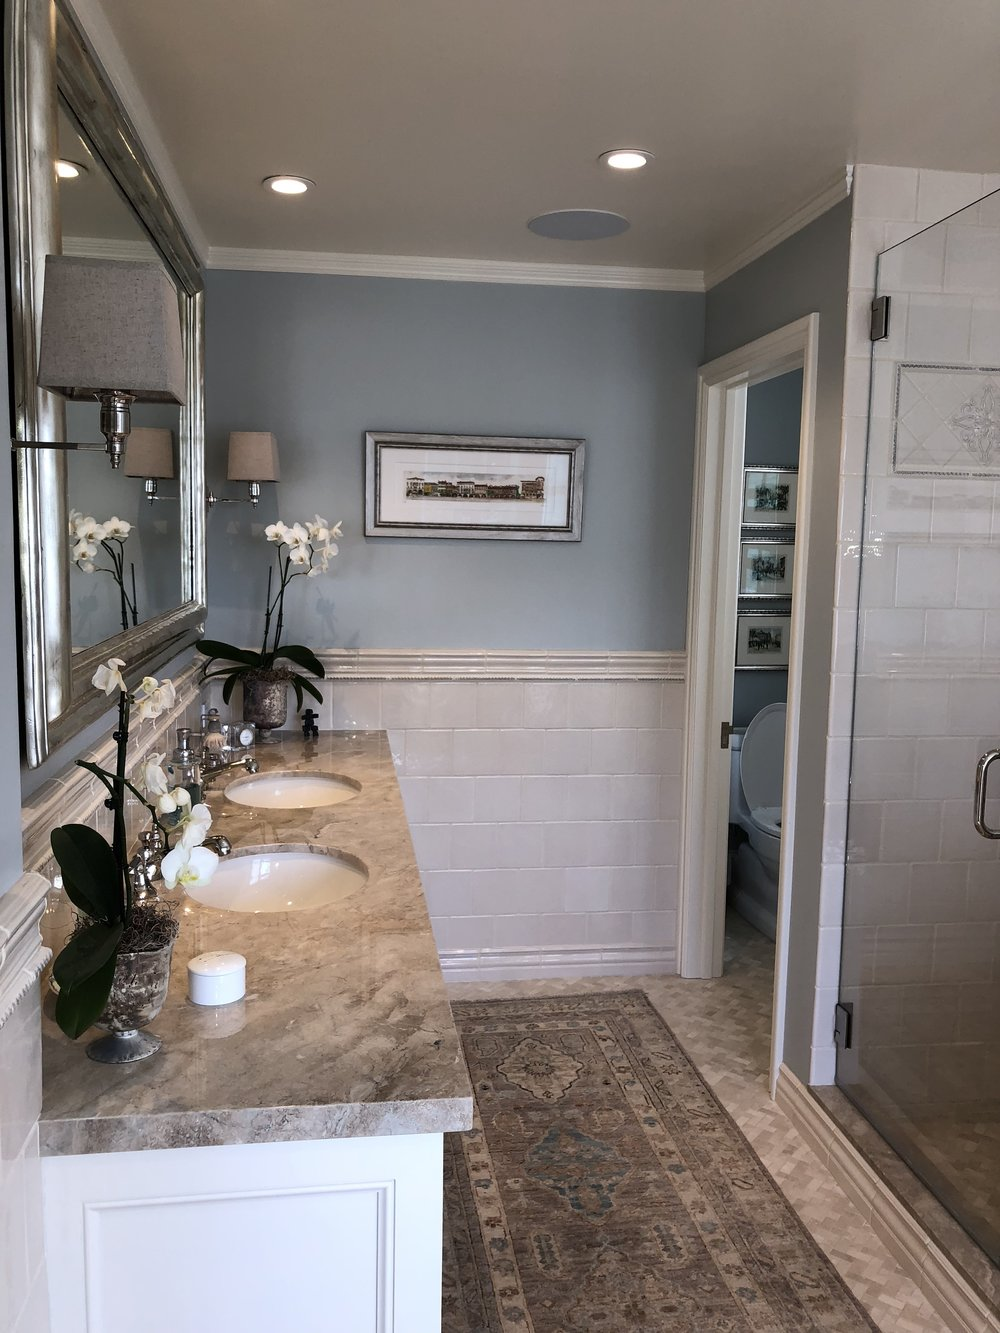 With A Large Walk In Closet, Deep Soaking Tub, Extra Large Shower And  Individual Sinks, There Is No Stress About Space Here. Notice The  Marble Topped Tub, ...